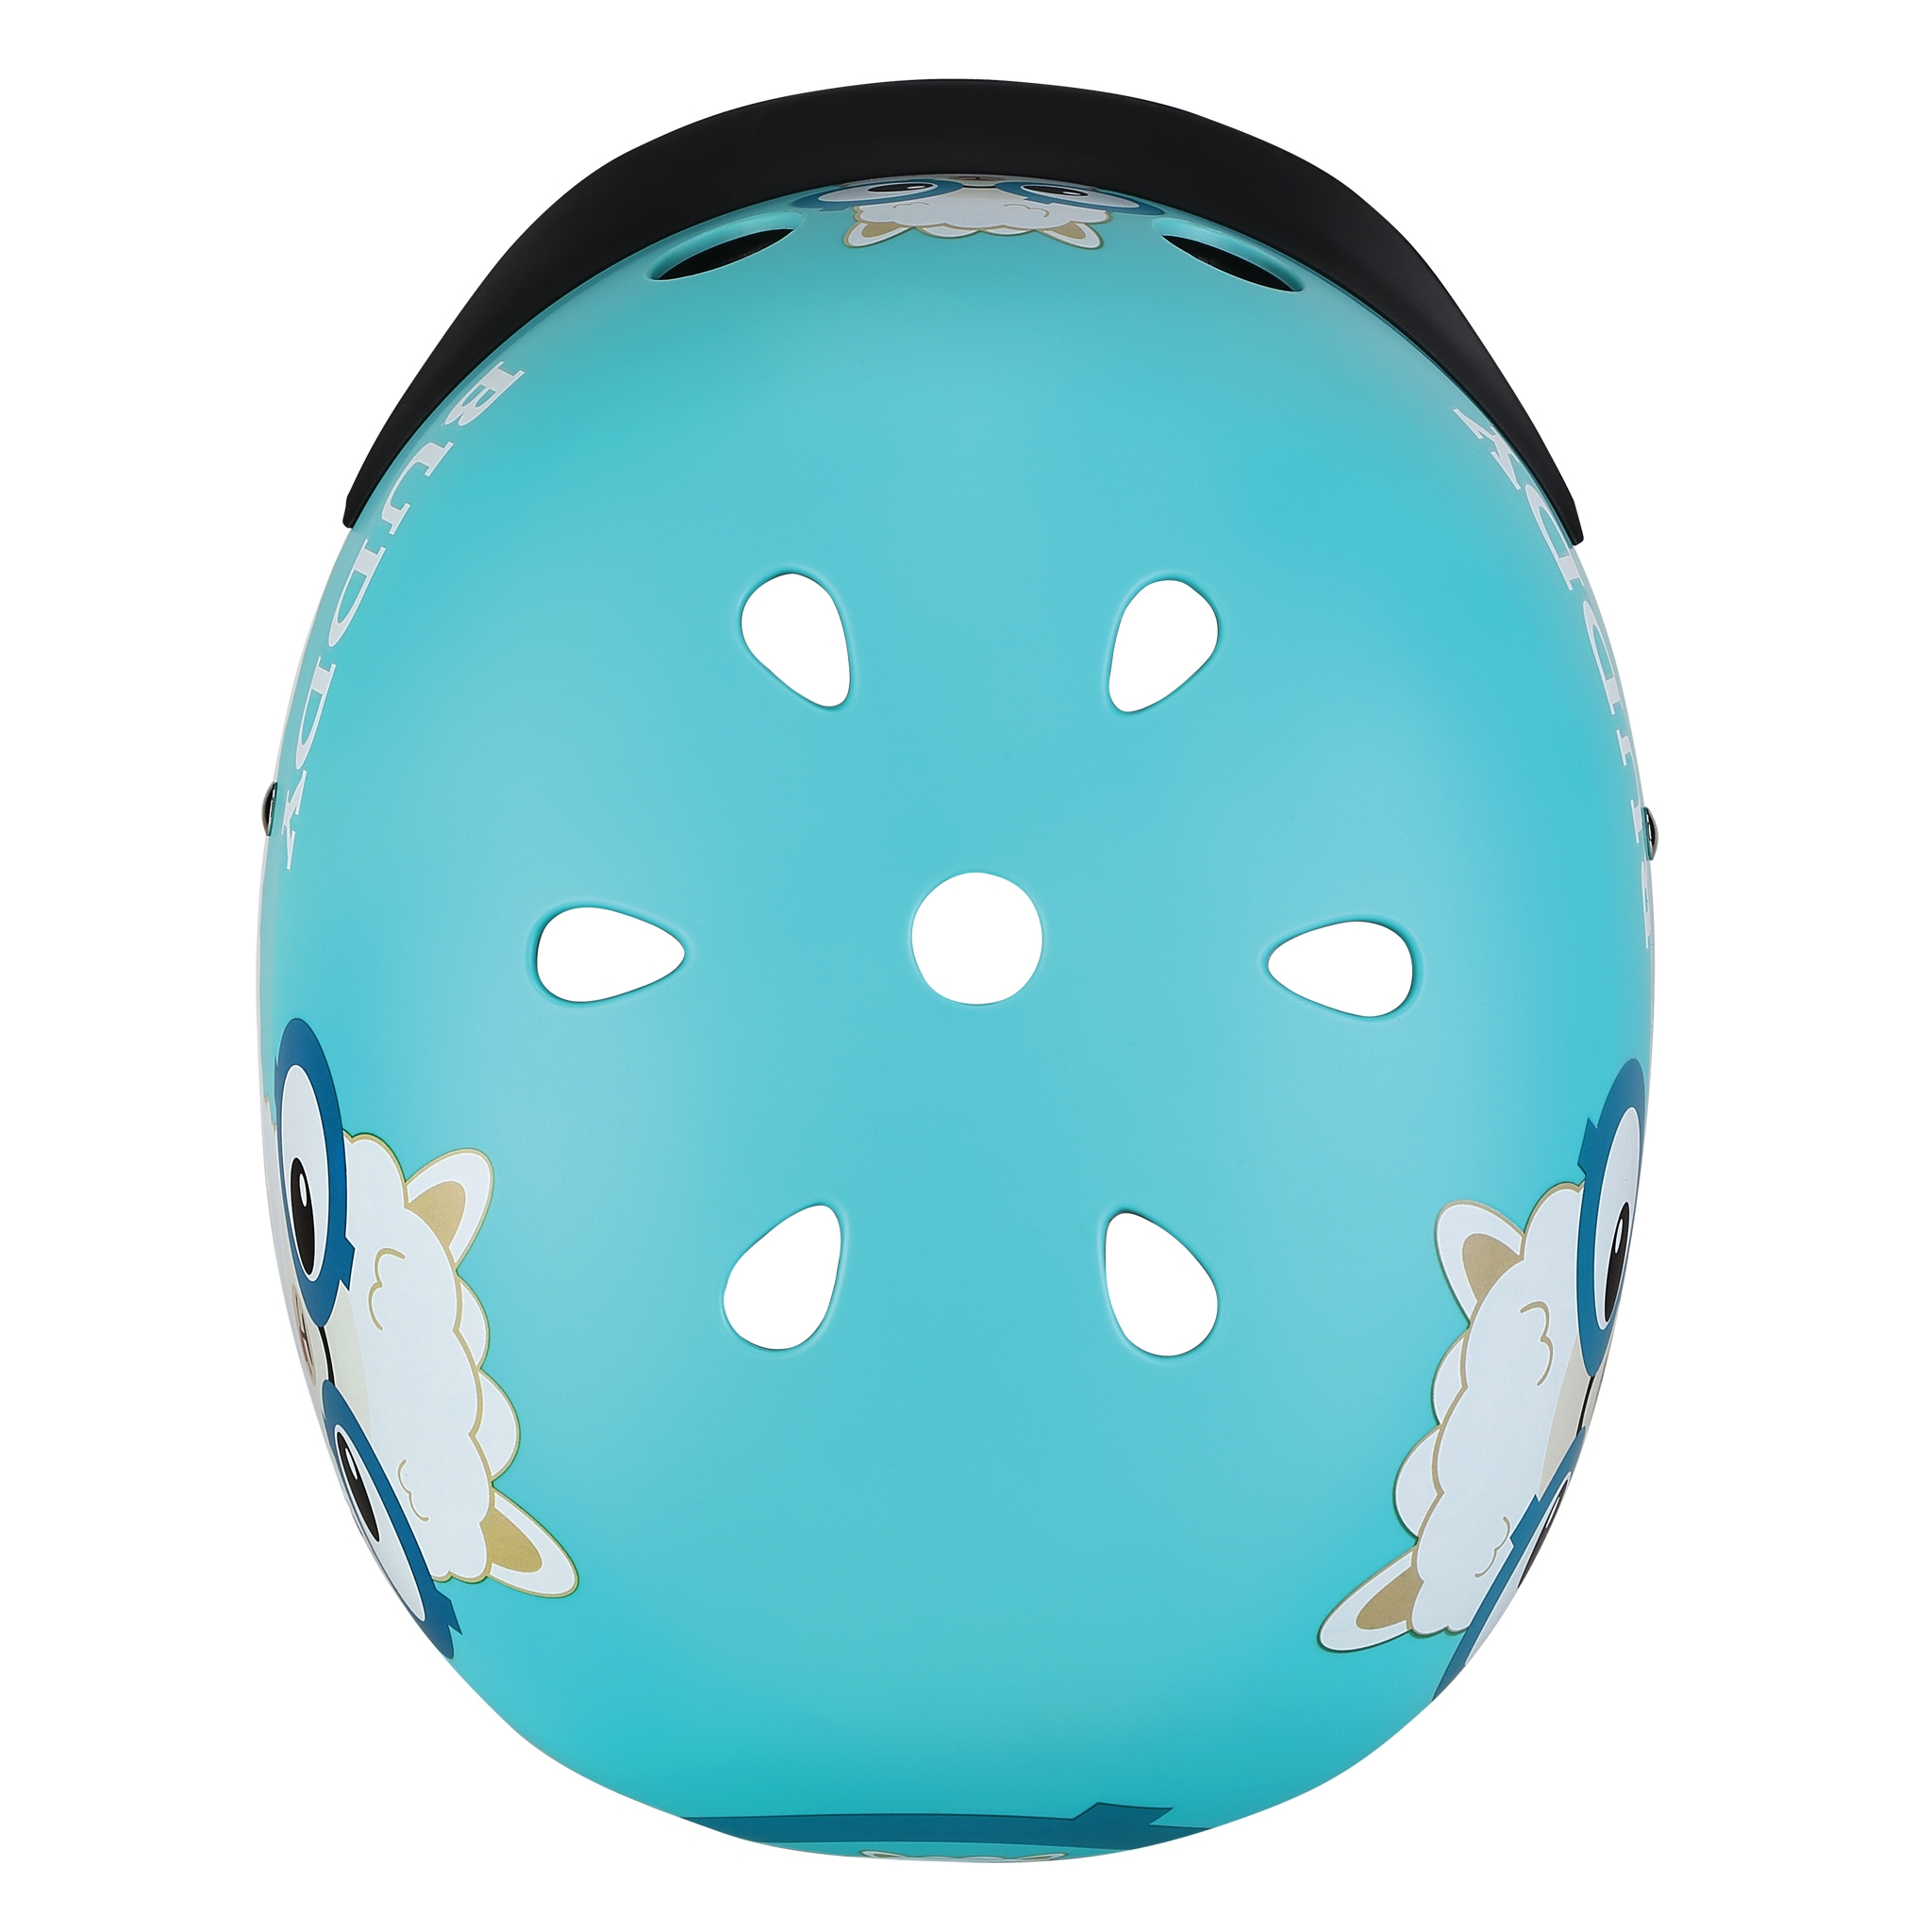 ELITE-helmets-best-scooter-helmets-for-kids-with-air-vents-cooling-system-blue